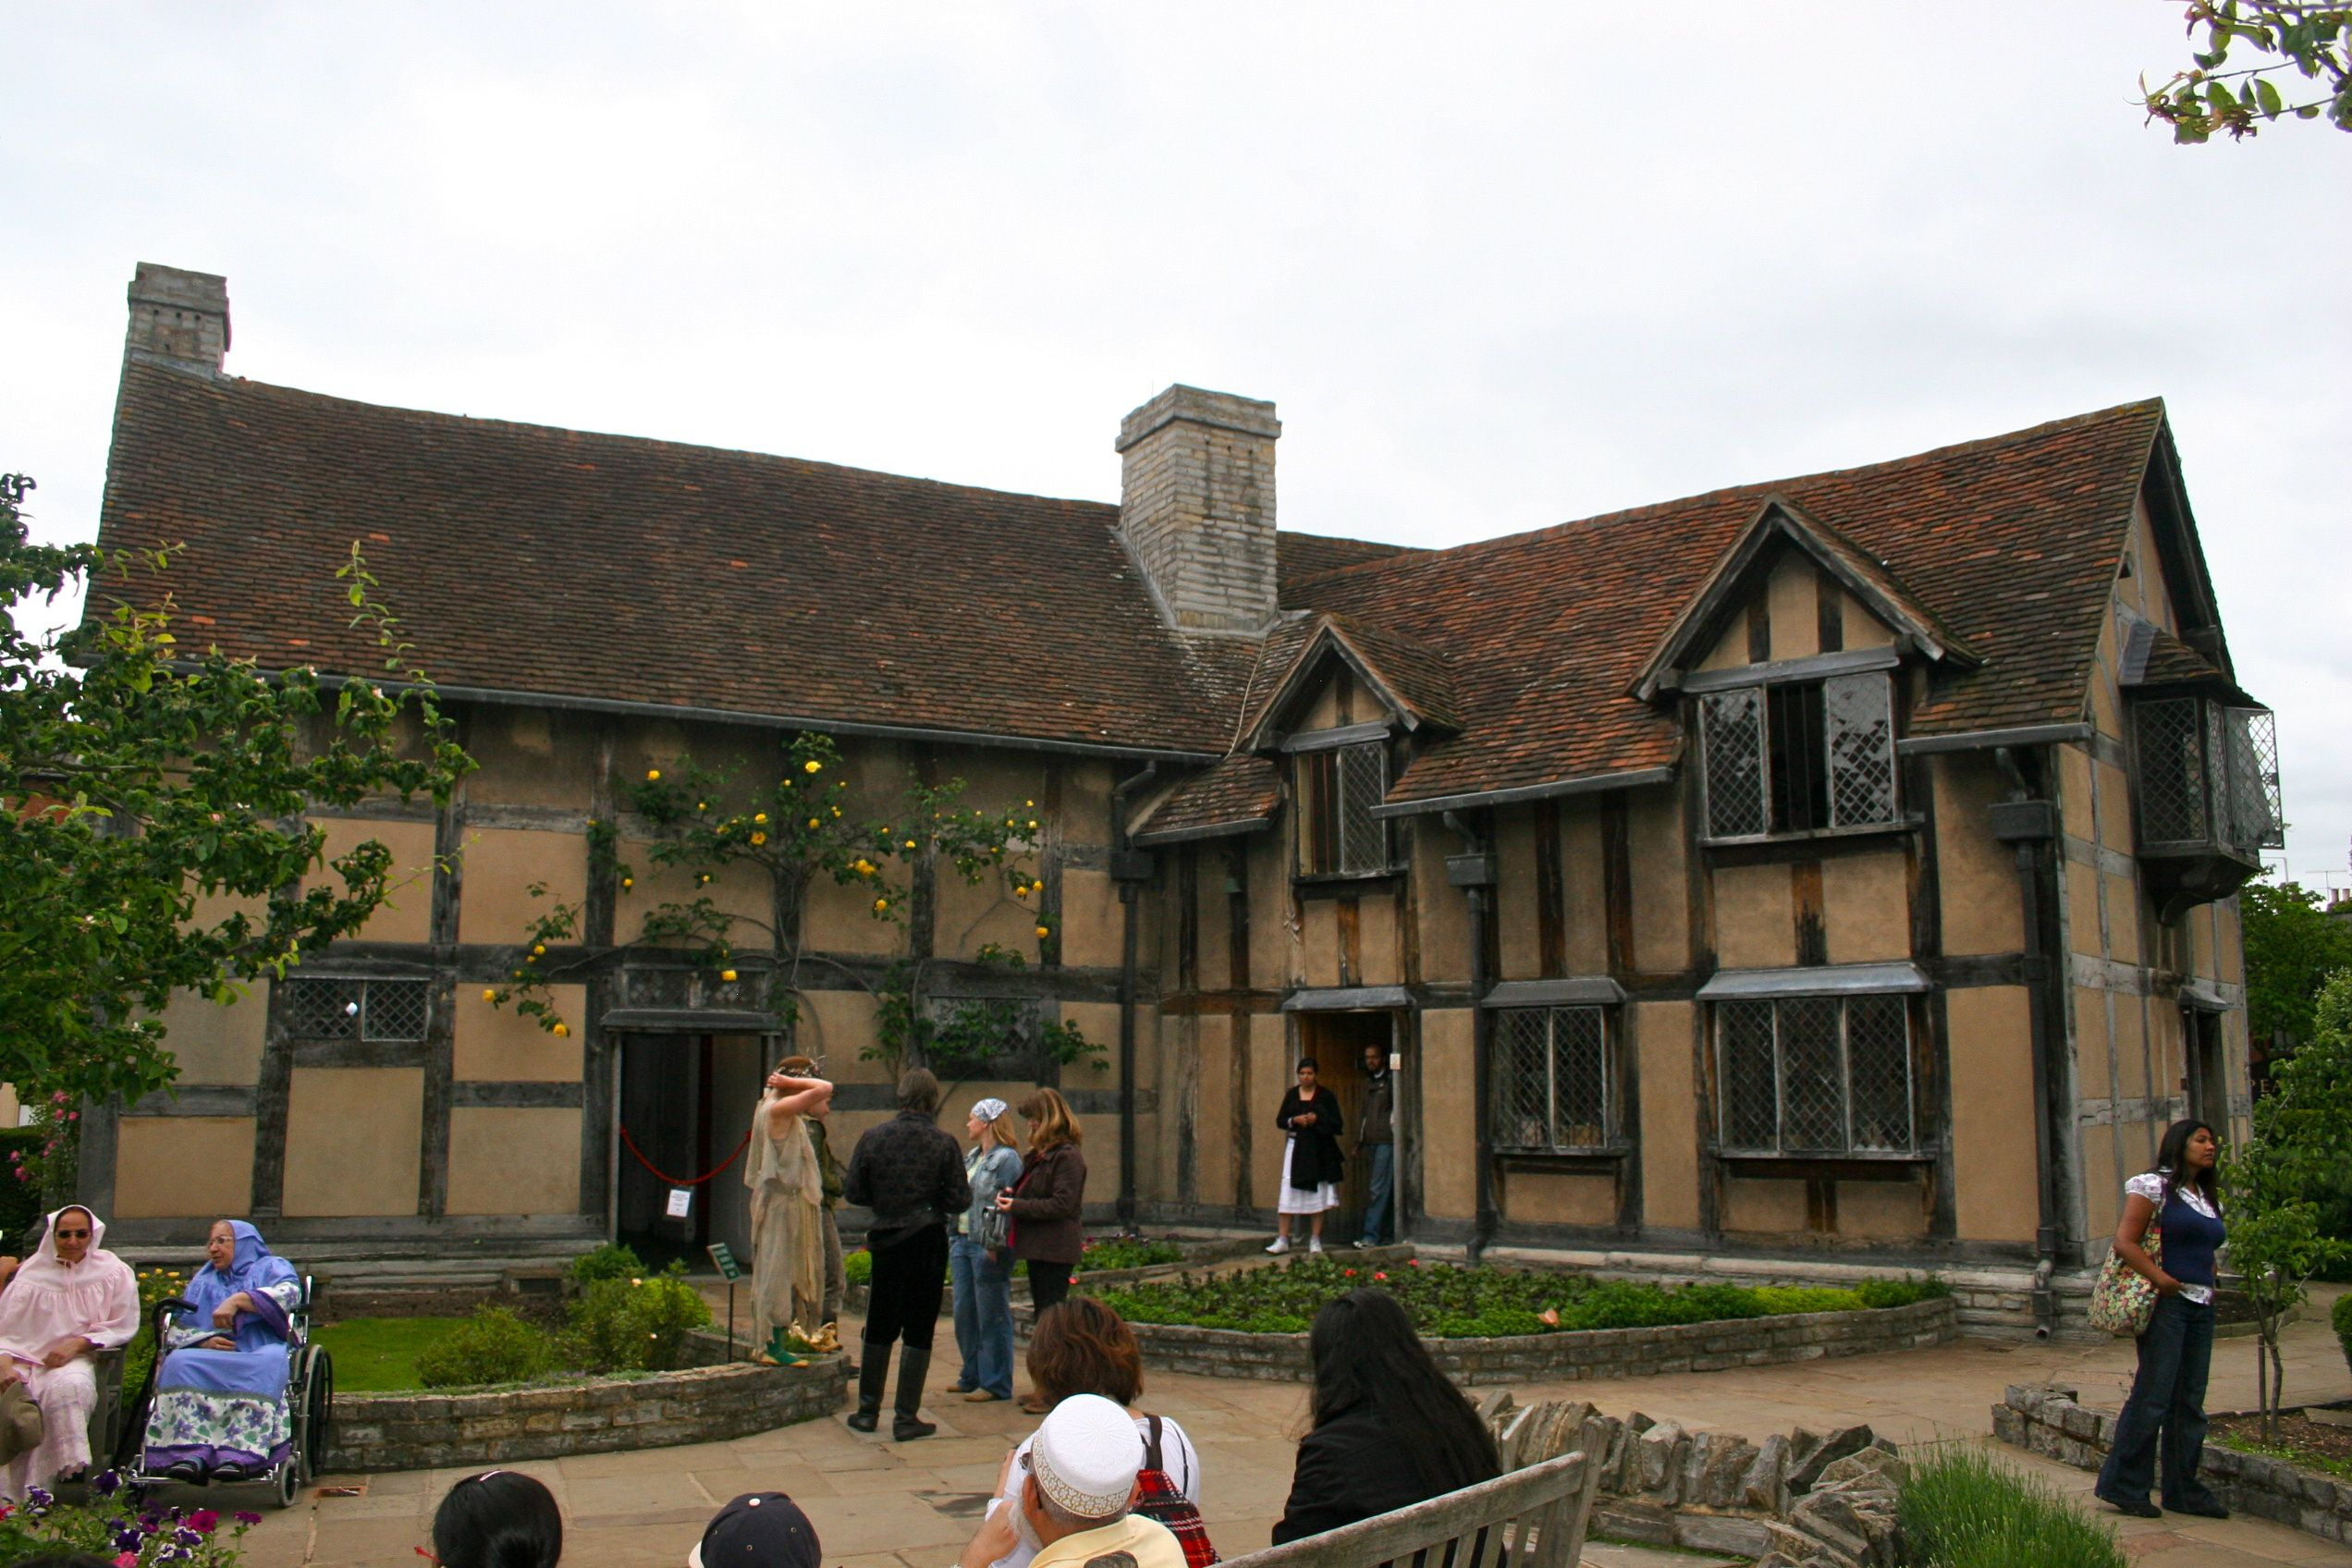 Stratford Upon Avon UK Shakespeares Birthplace William Shakespeare Was Born In 1564 And Spent His Childhood Years